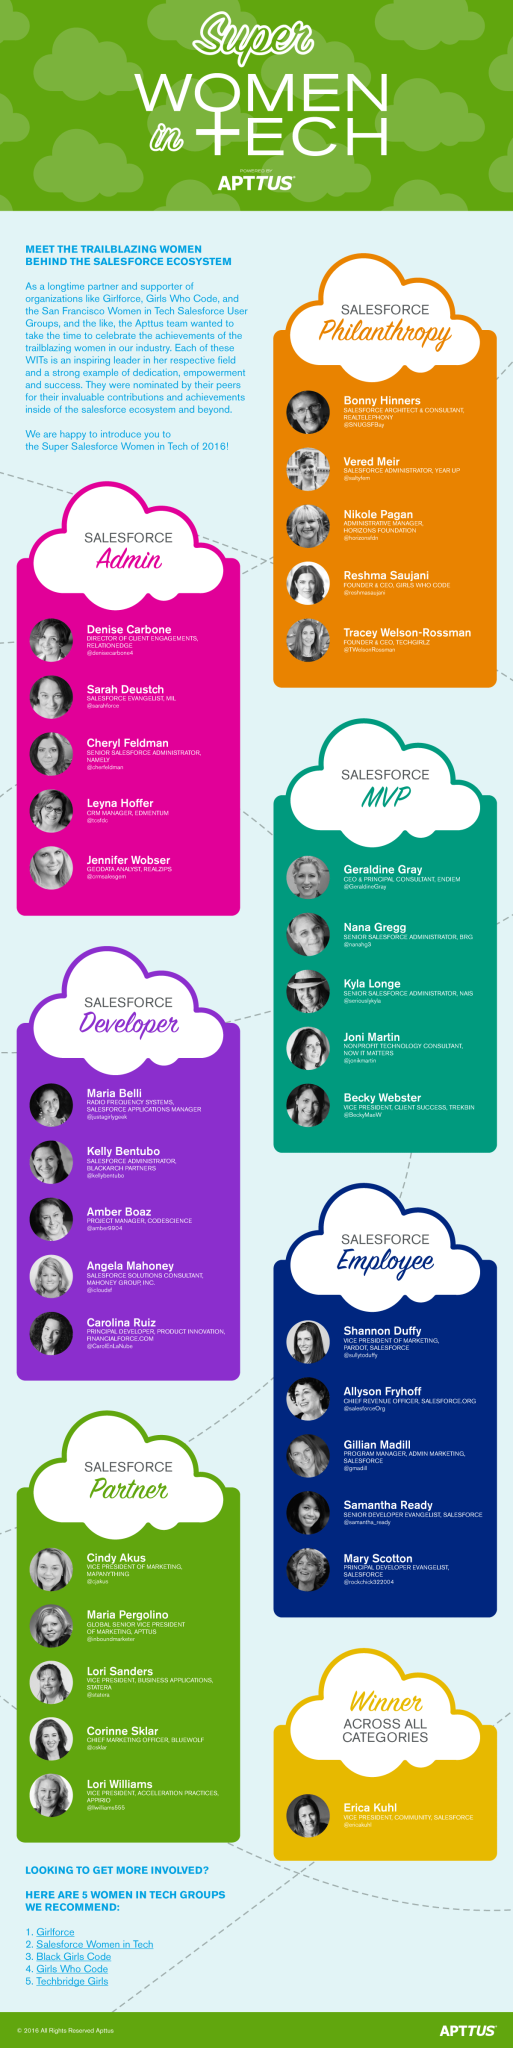 women_in_tech_infographic-new-final